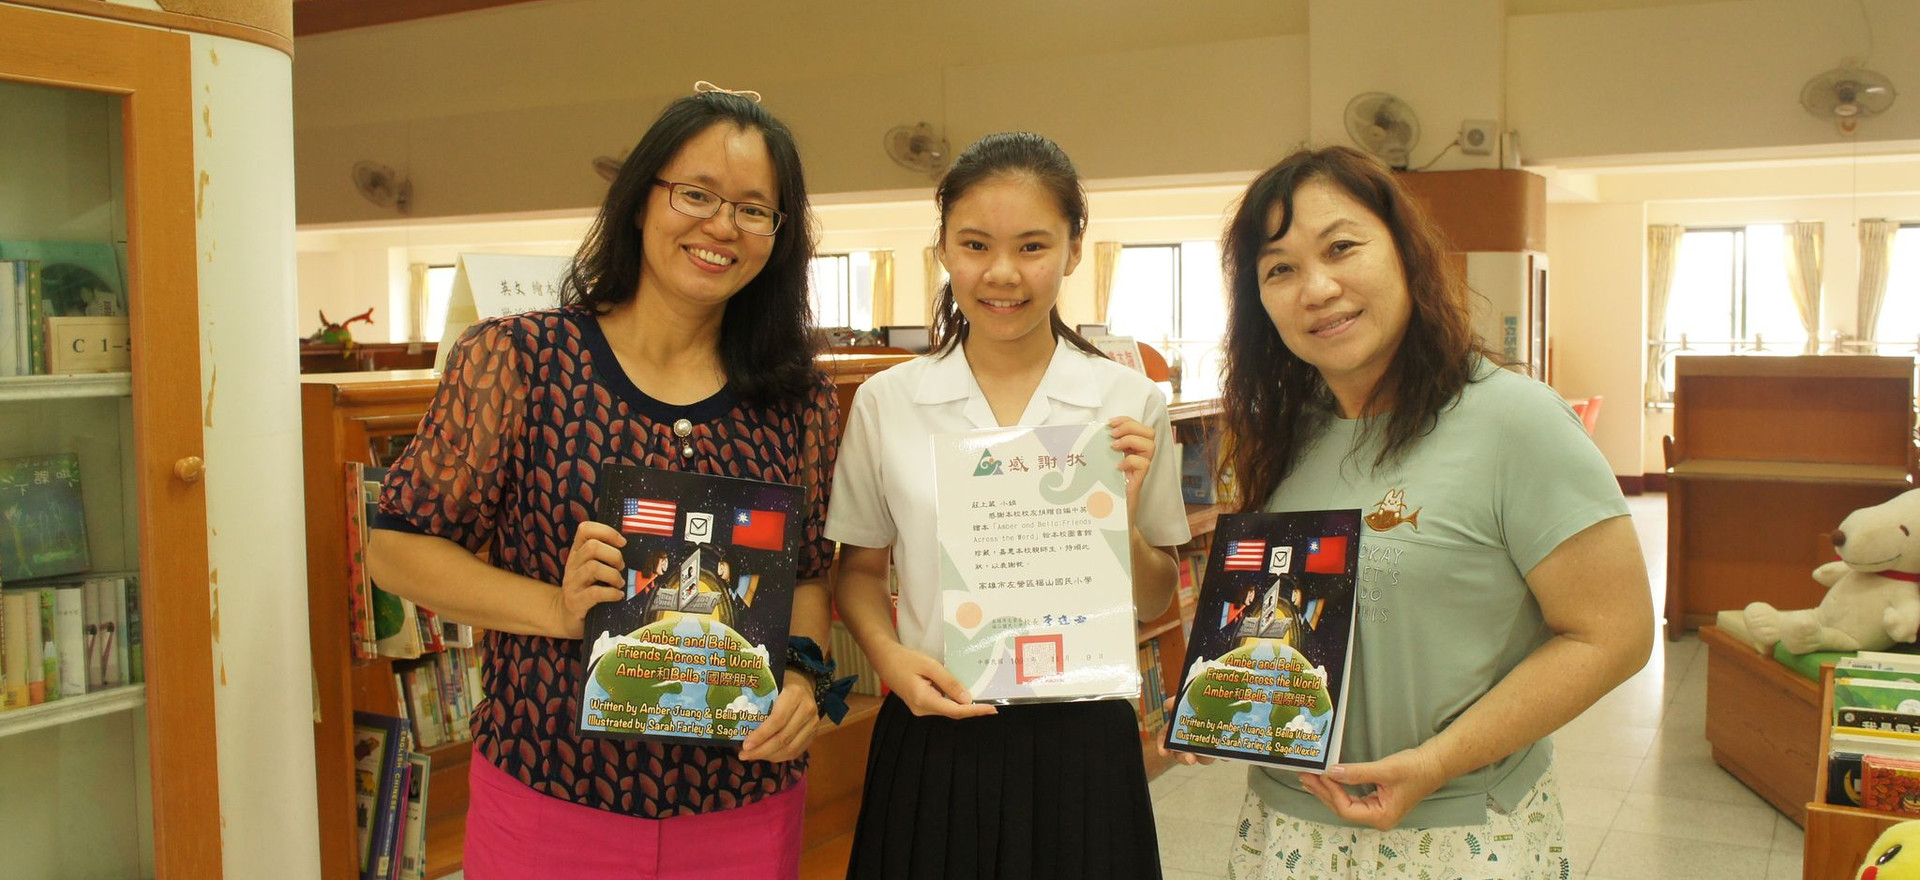 Students enjoy award-winning artwork by kids around the world at the art exhibition!